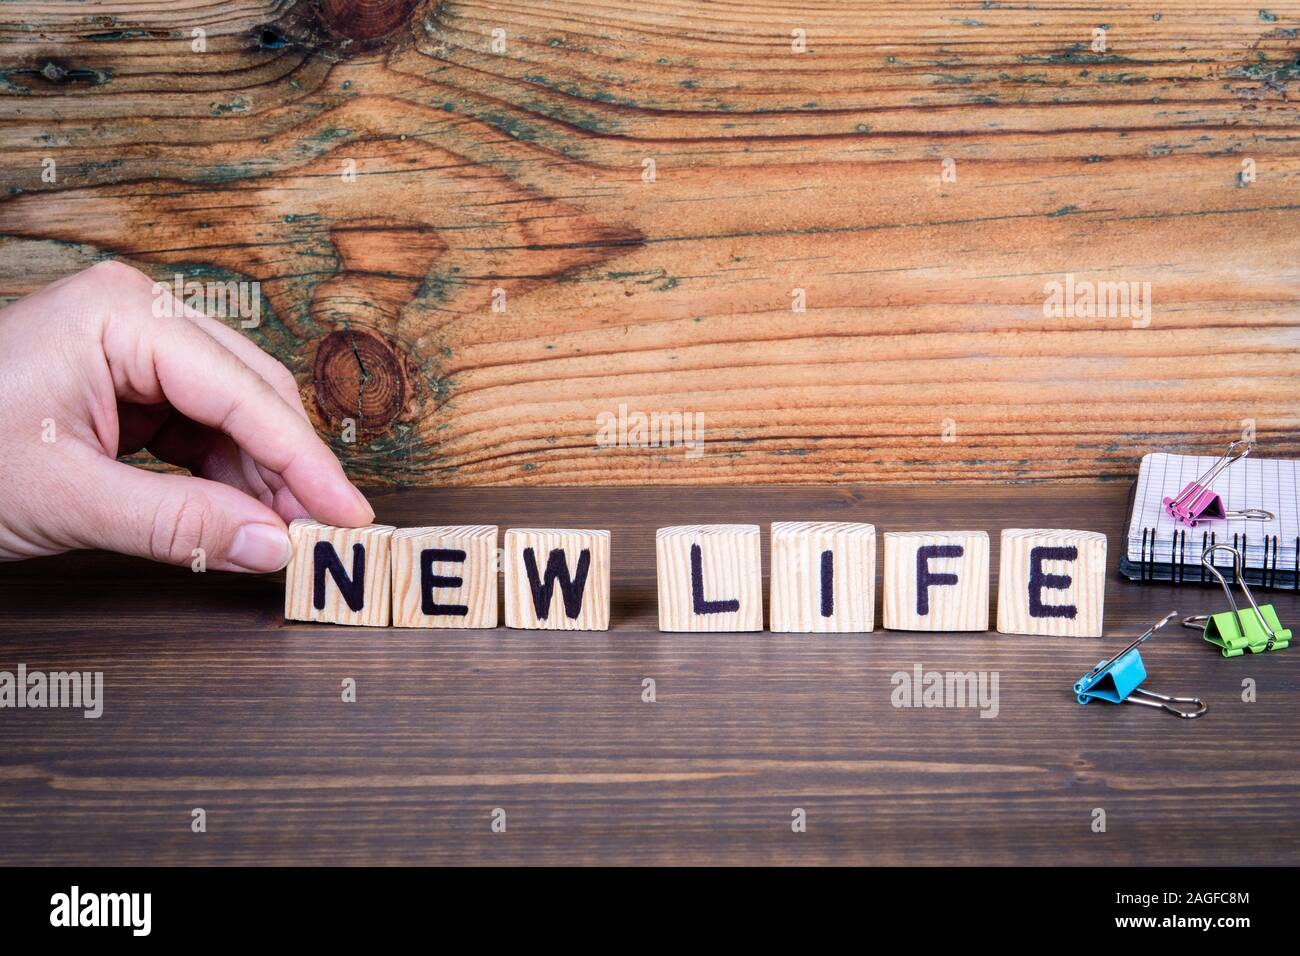 Start New Life High Resolution Stock Photography and Images - Alamy